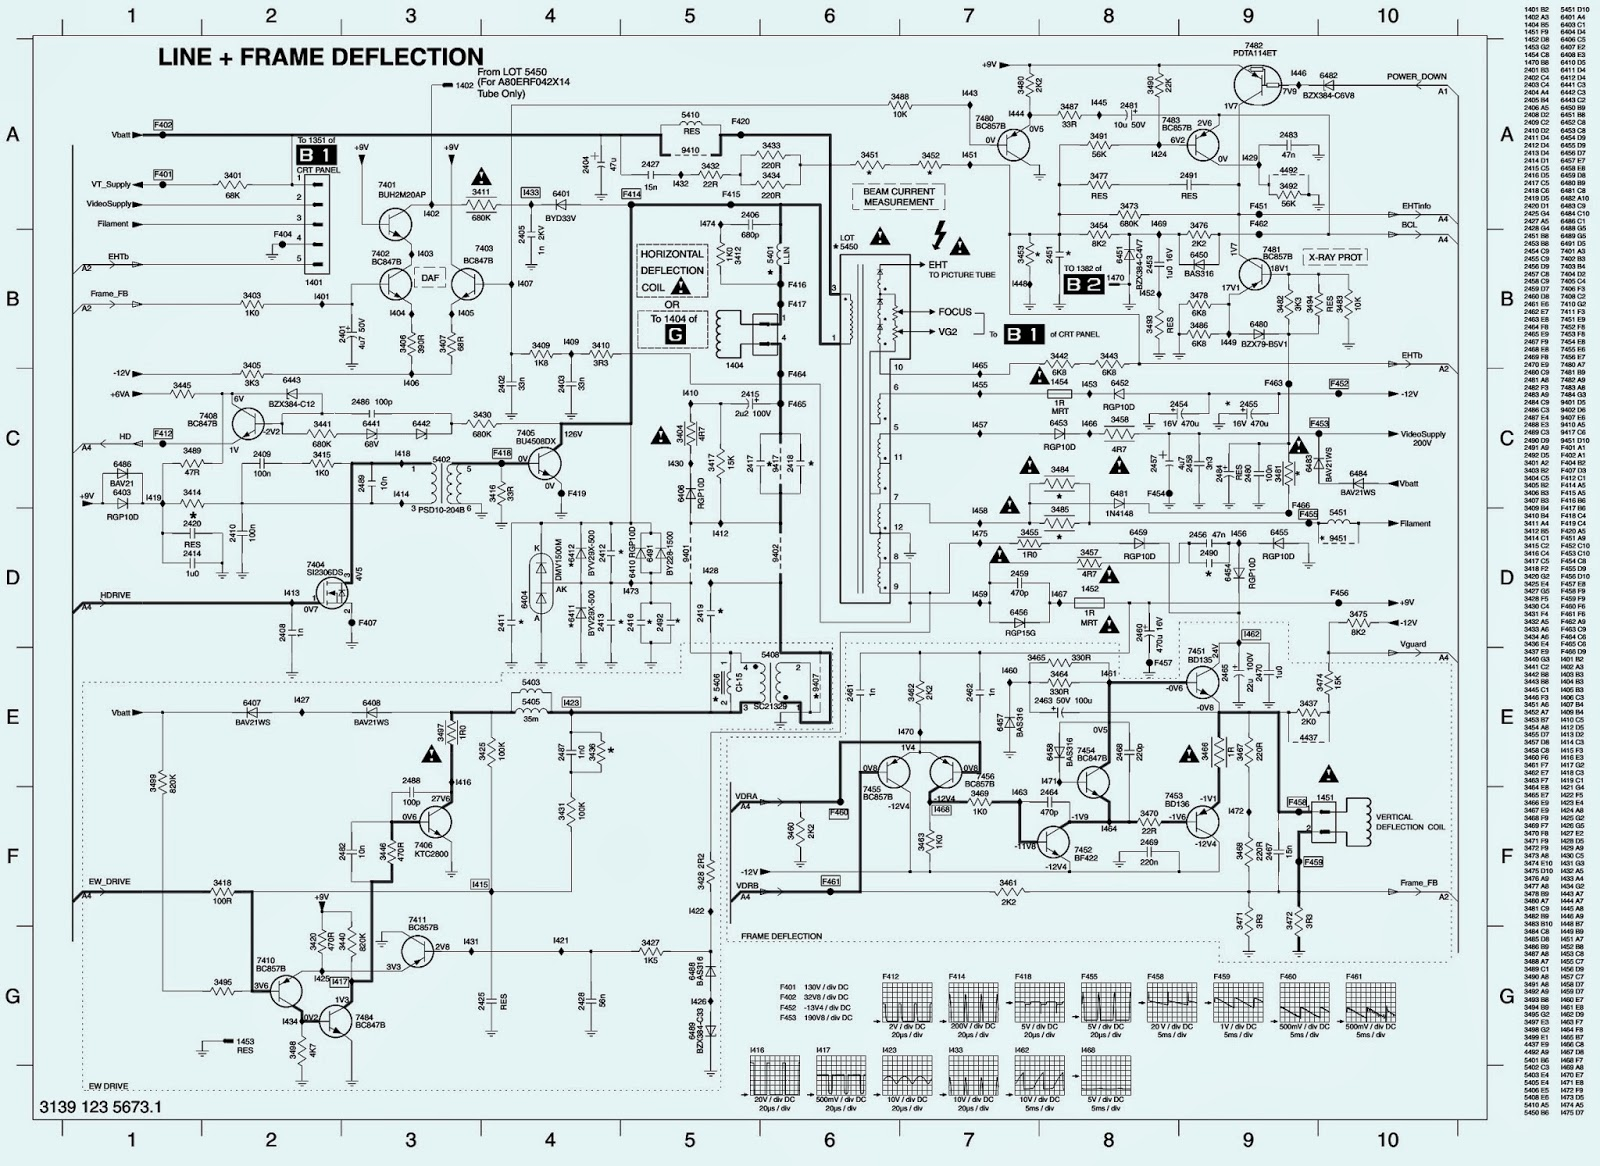 Philips Tv Wiring Diagram - WIRE Center •